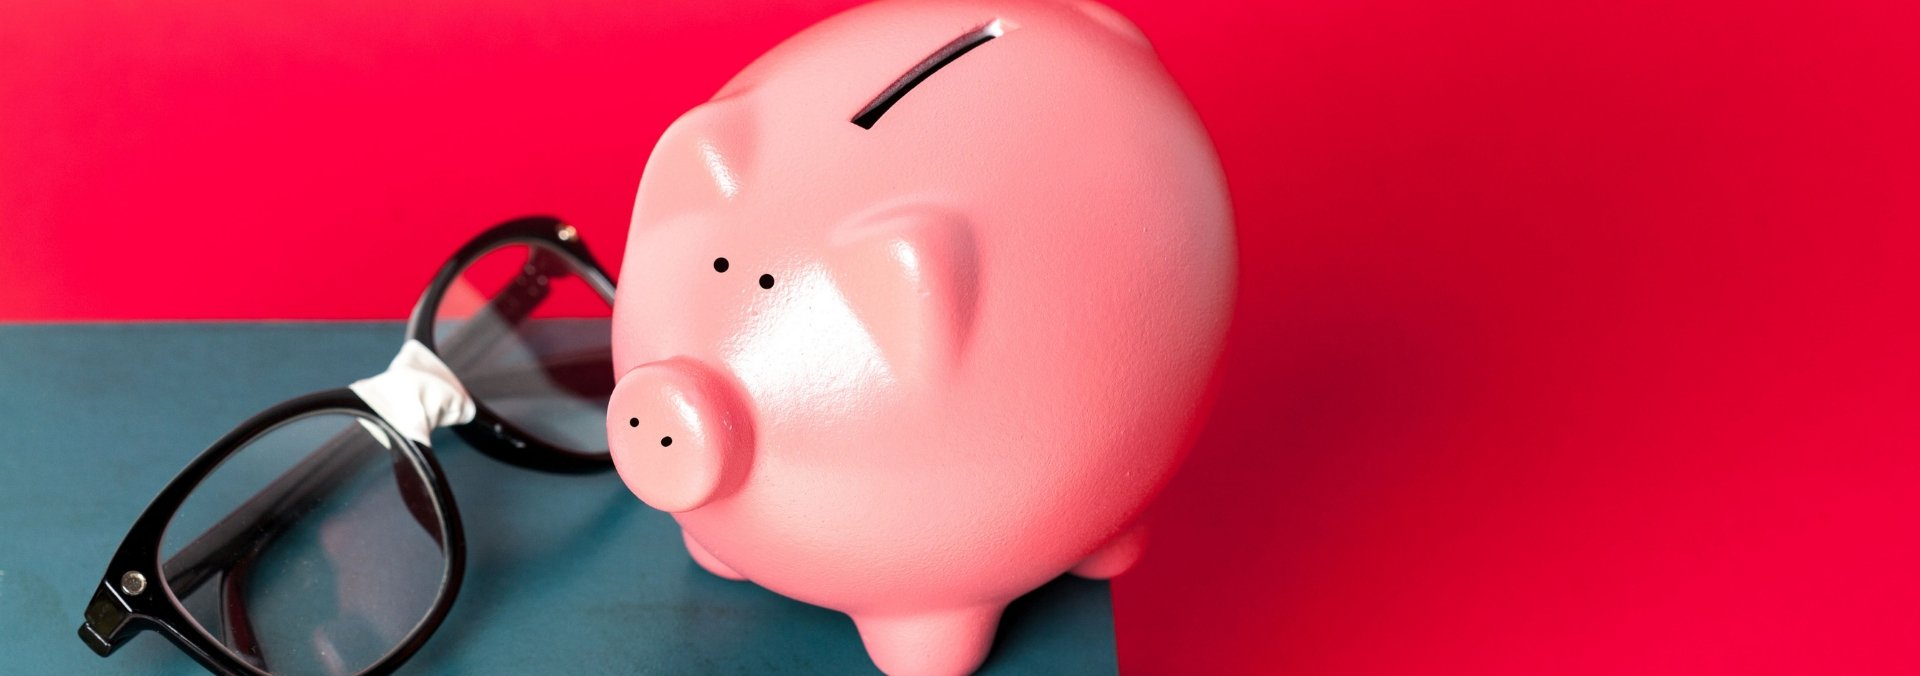 piggy bank and book to save money